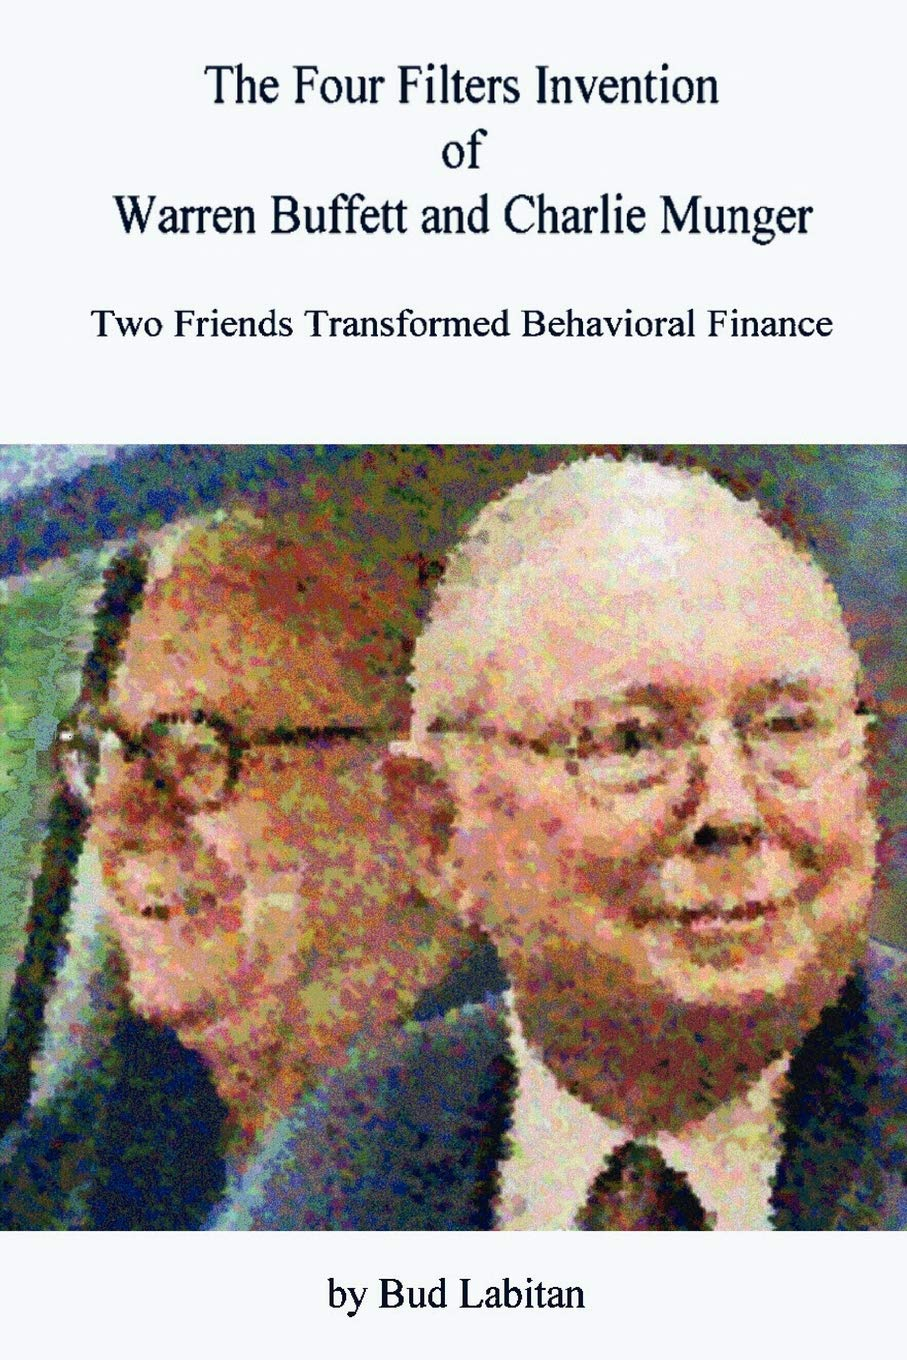 The Four Filters Invention Of Warren Buffett And Charlie